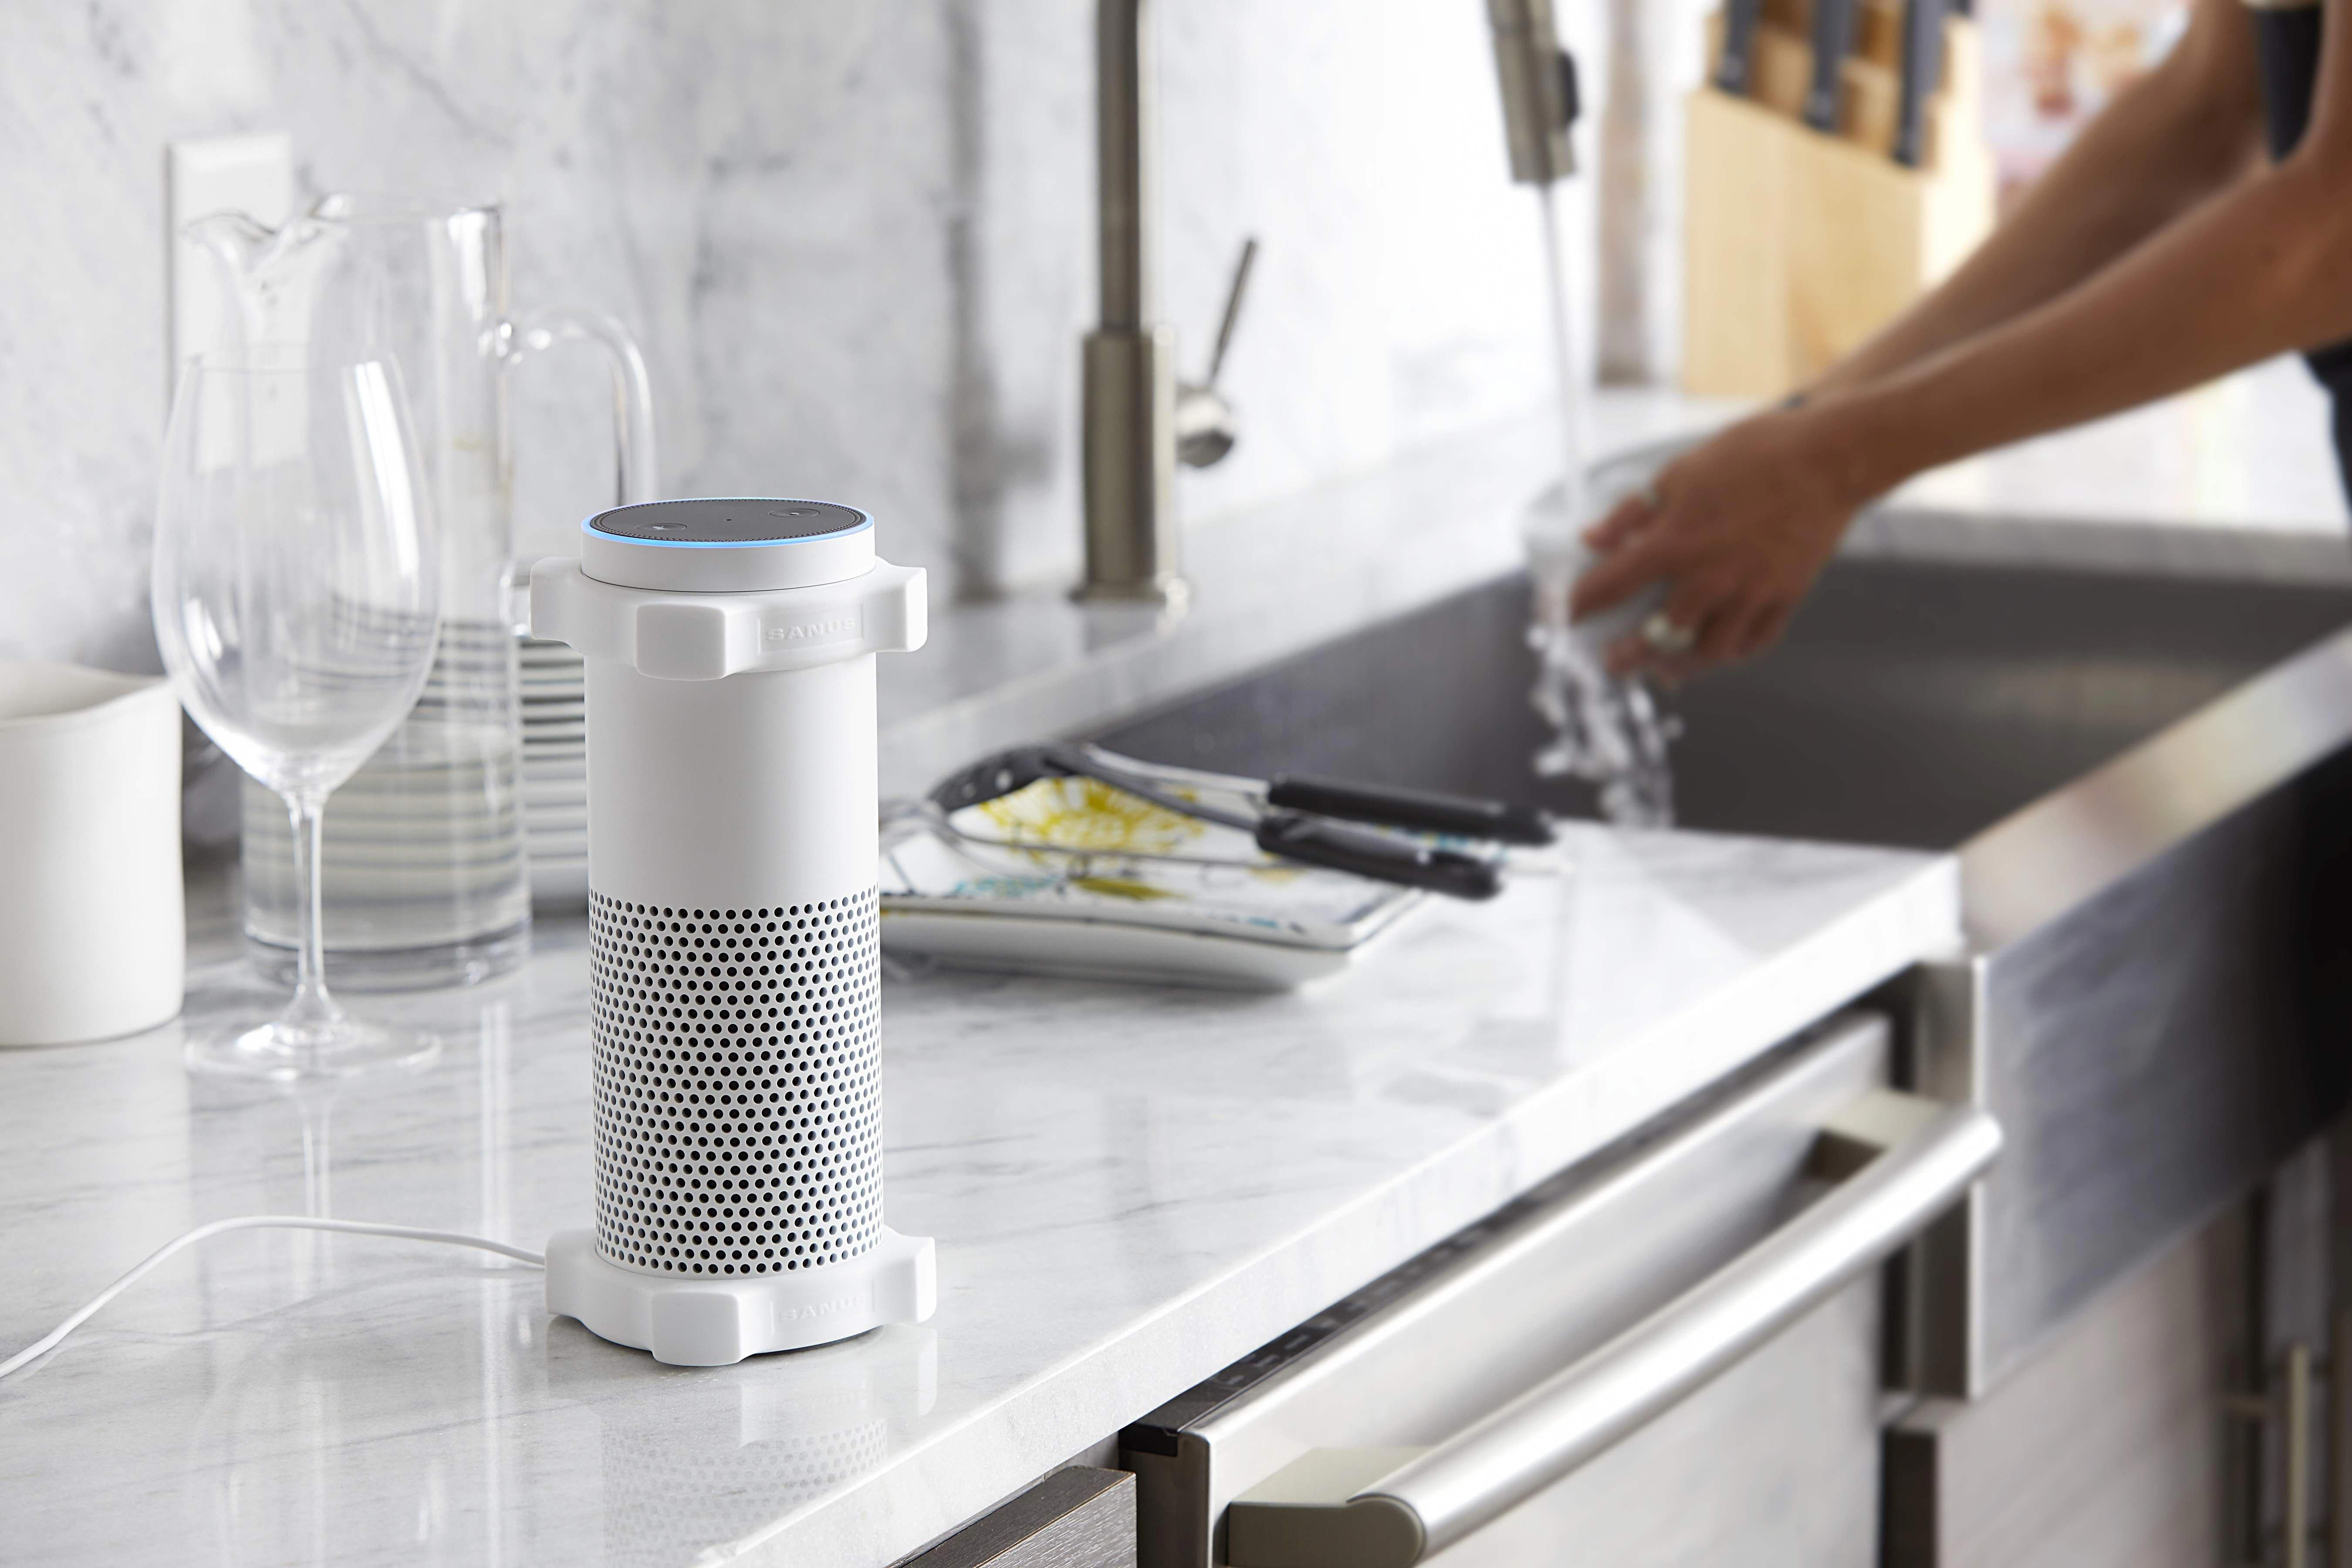 44 cool things you can do with the Amazon Echo From